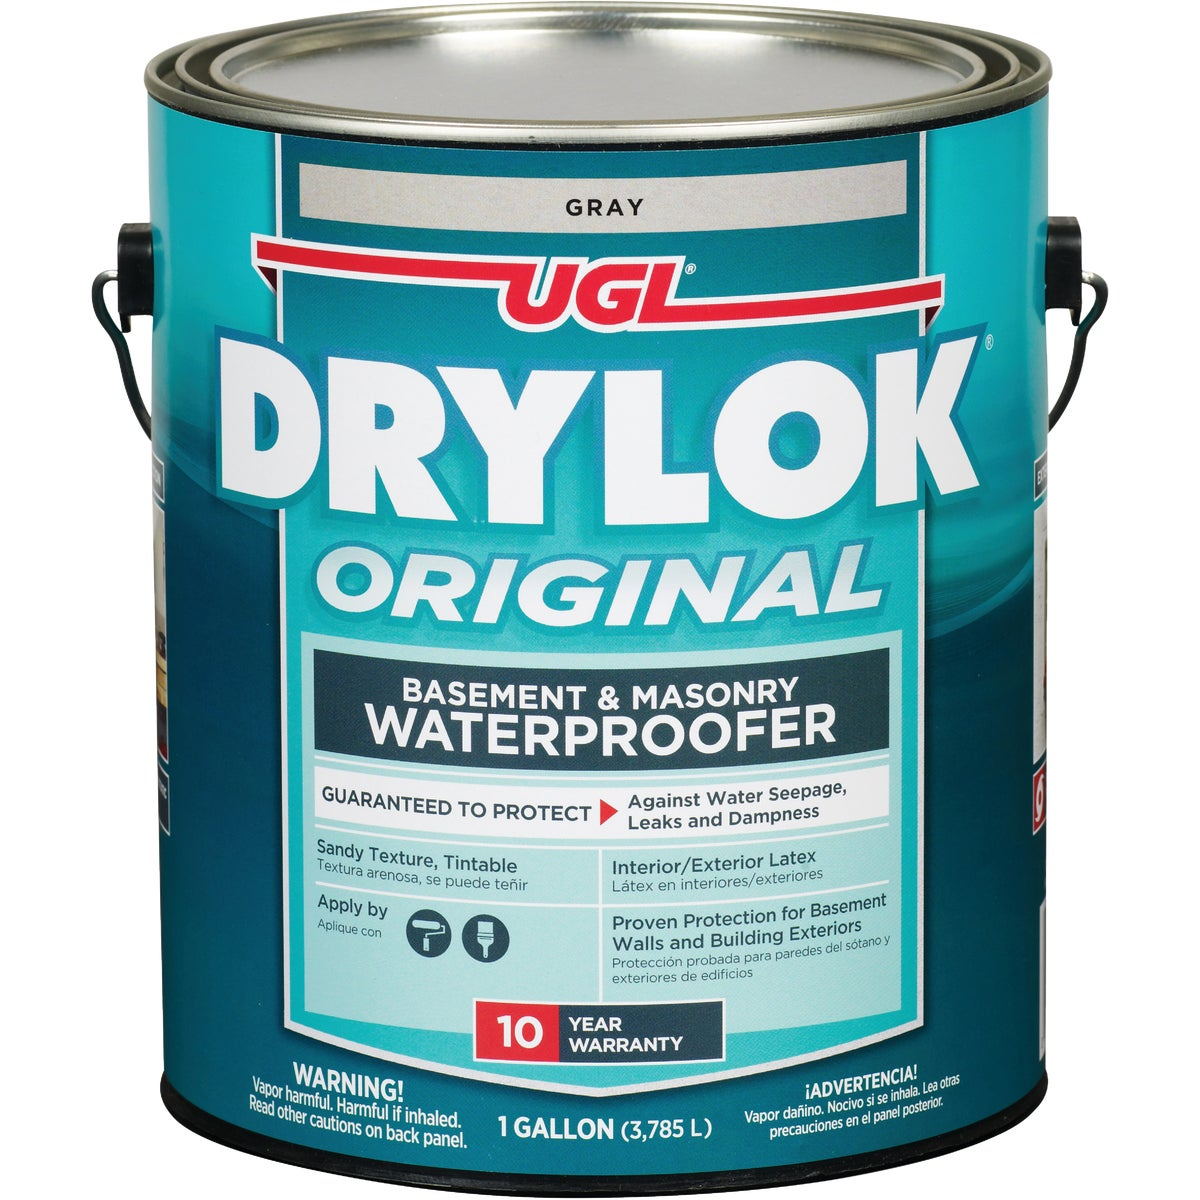 GRY MASONRY WATERPROOFER - 27613 by United Gilsonite Lab